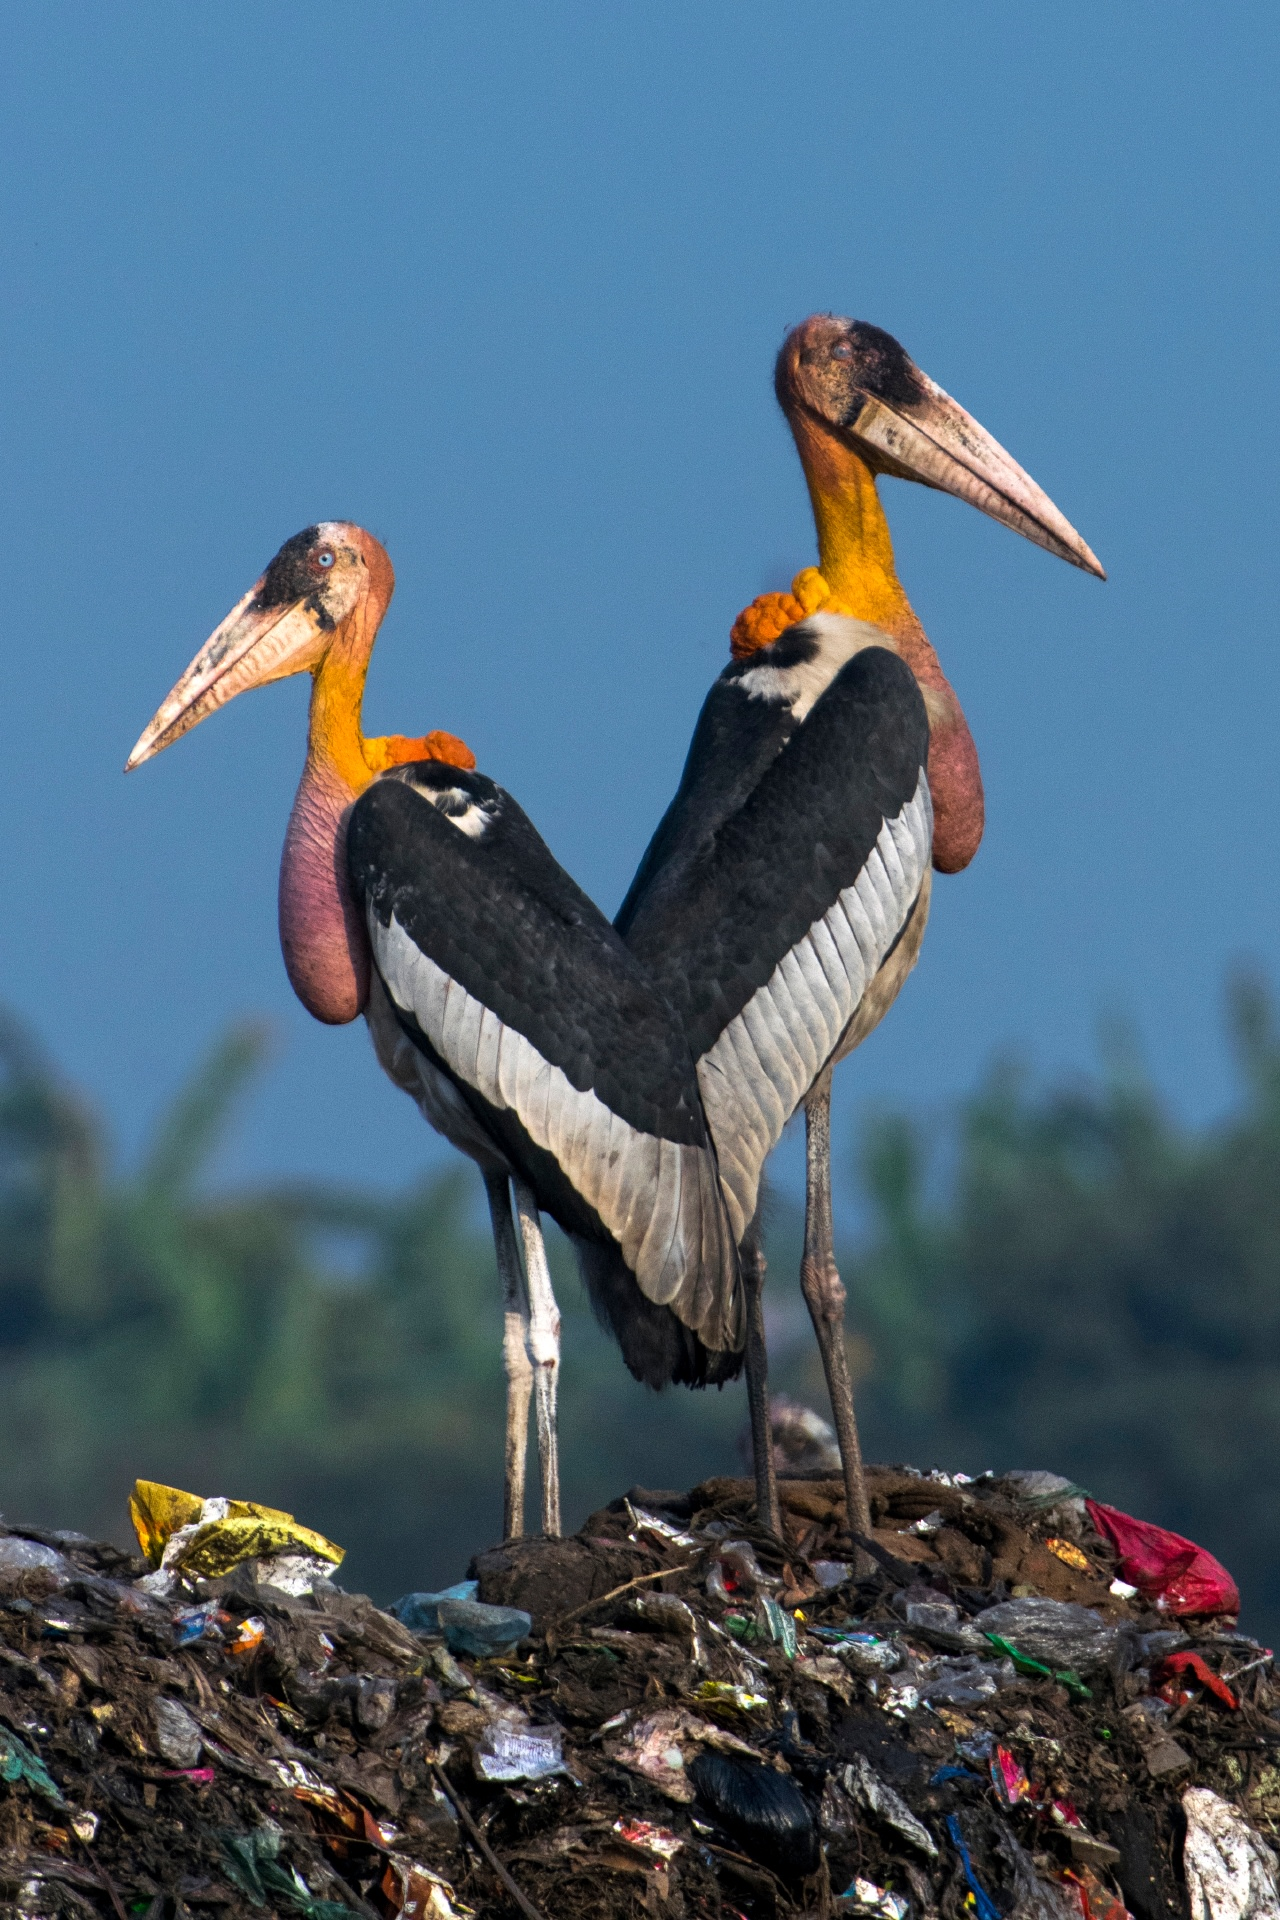 Standing around 1.5 m tall, the greater adjutant stork is a scavenger, feeding mainly on carrion. Photo: Udayan Borthakur